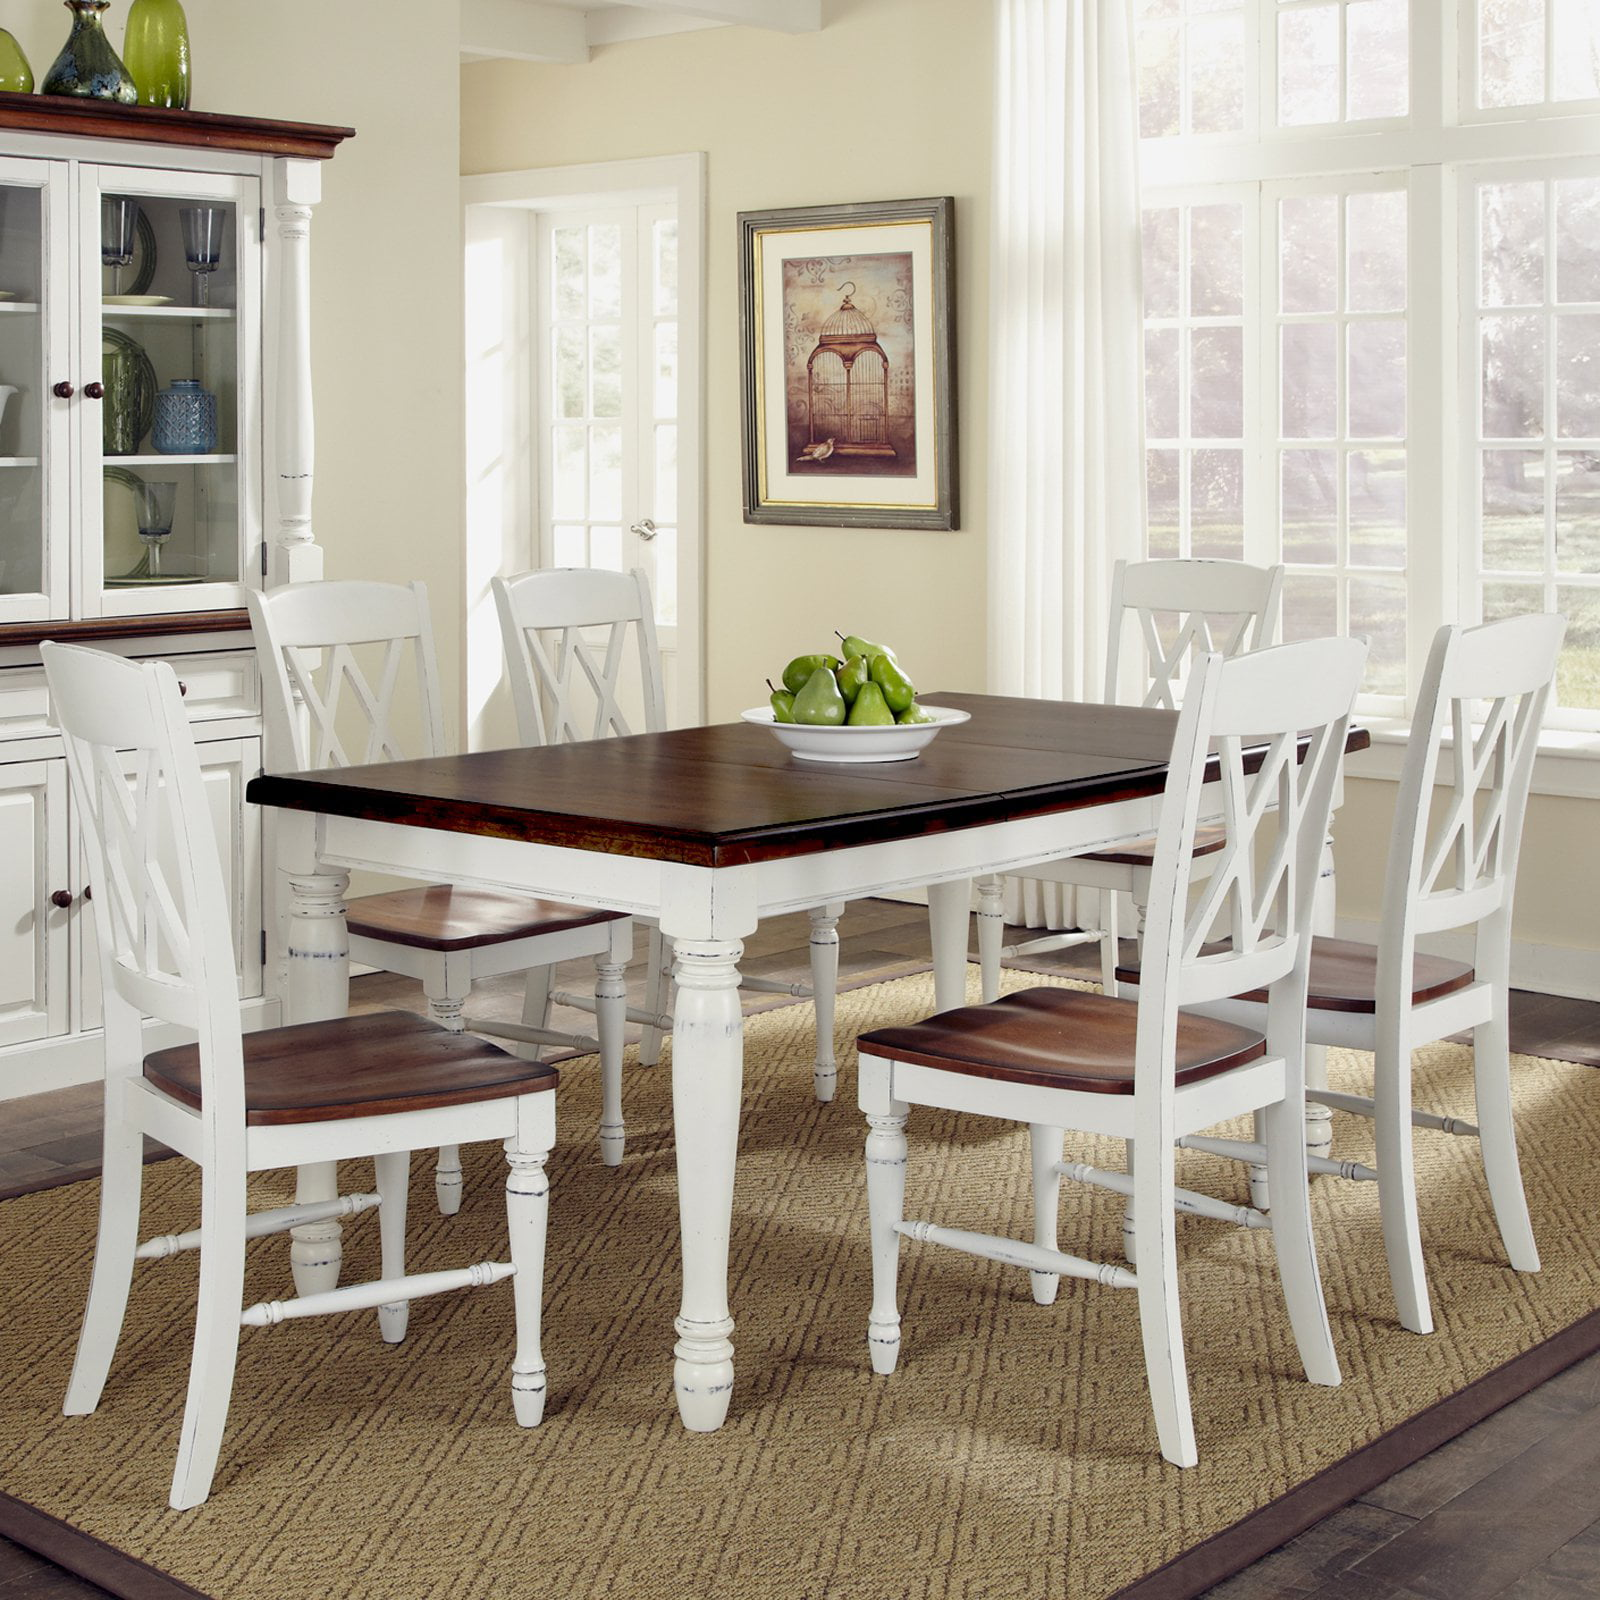 Home Styles Monarch Rectangular Dining Table and 6 Double X-Back Chairs Multiple Finishes - Walmart.com & Home Styles Monarch Rectangular Dining Table and 6 Double X-Back ...